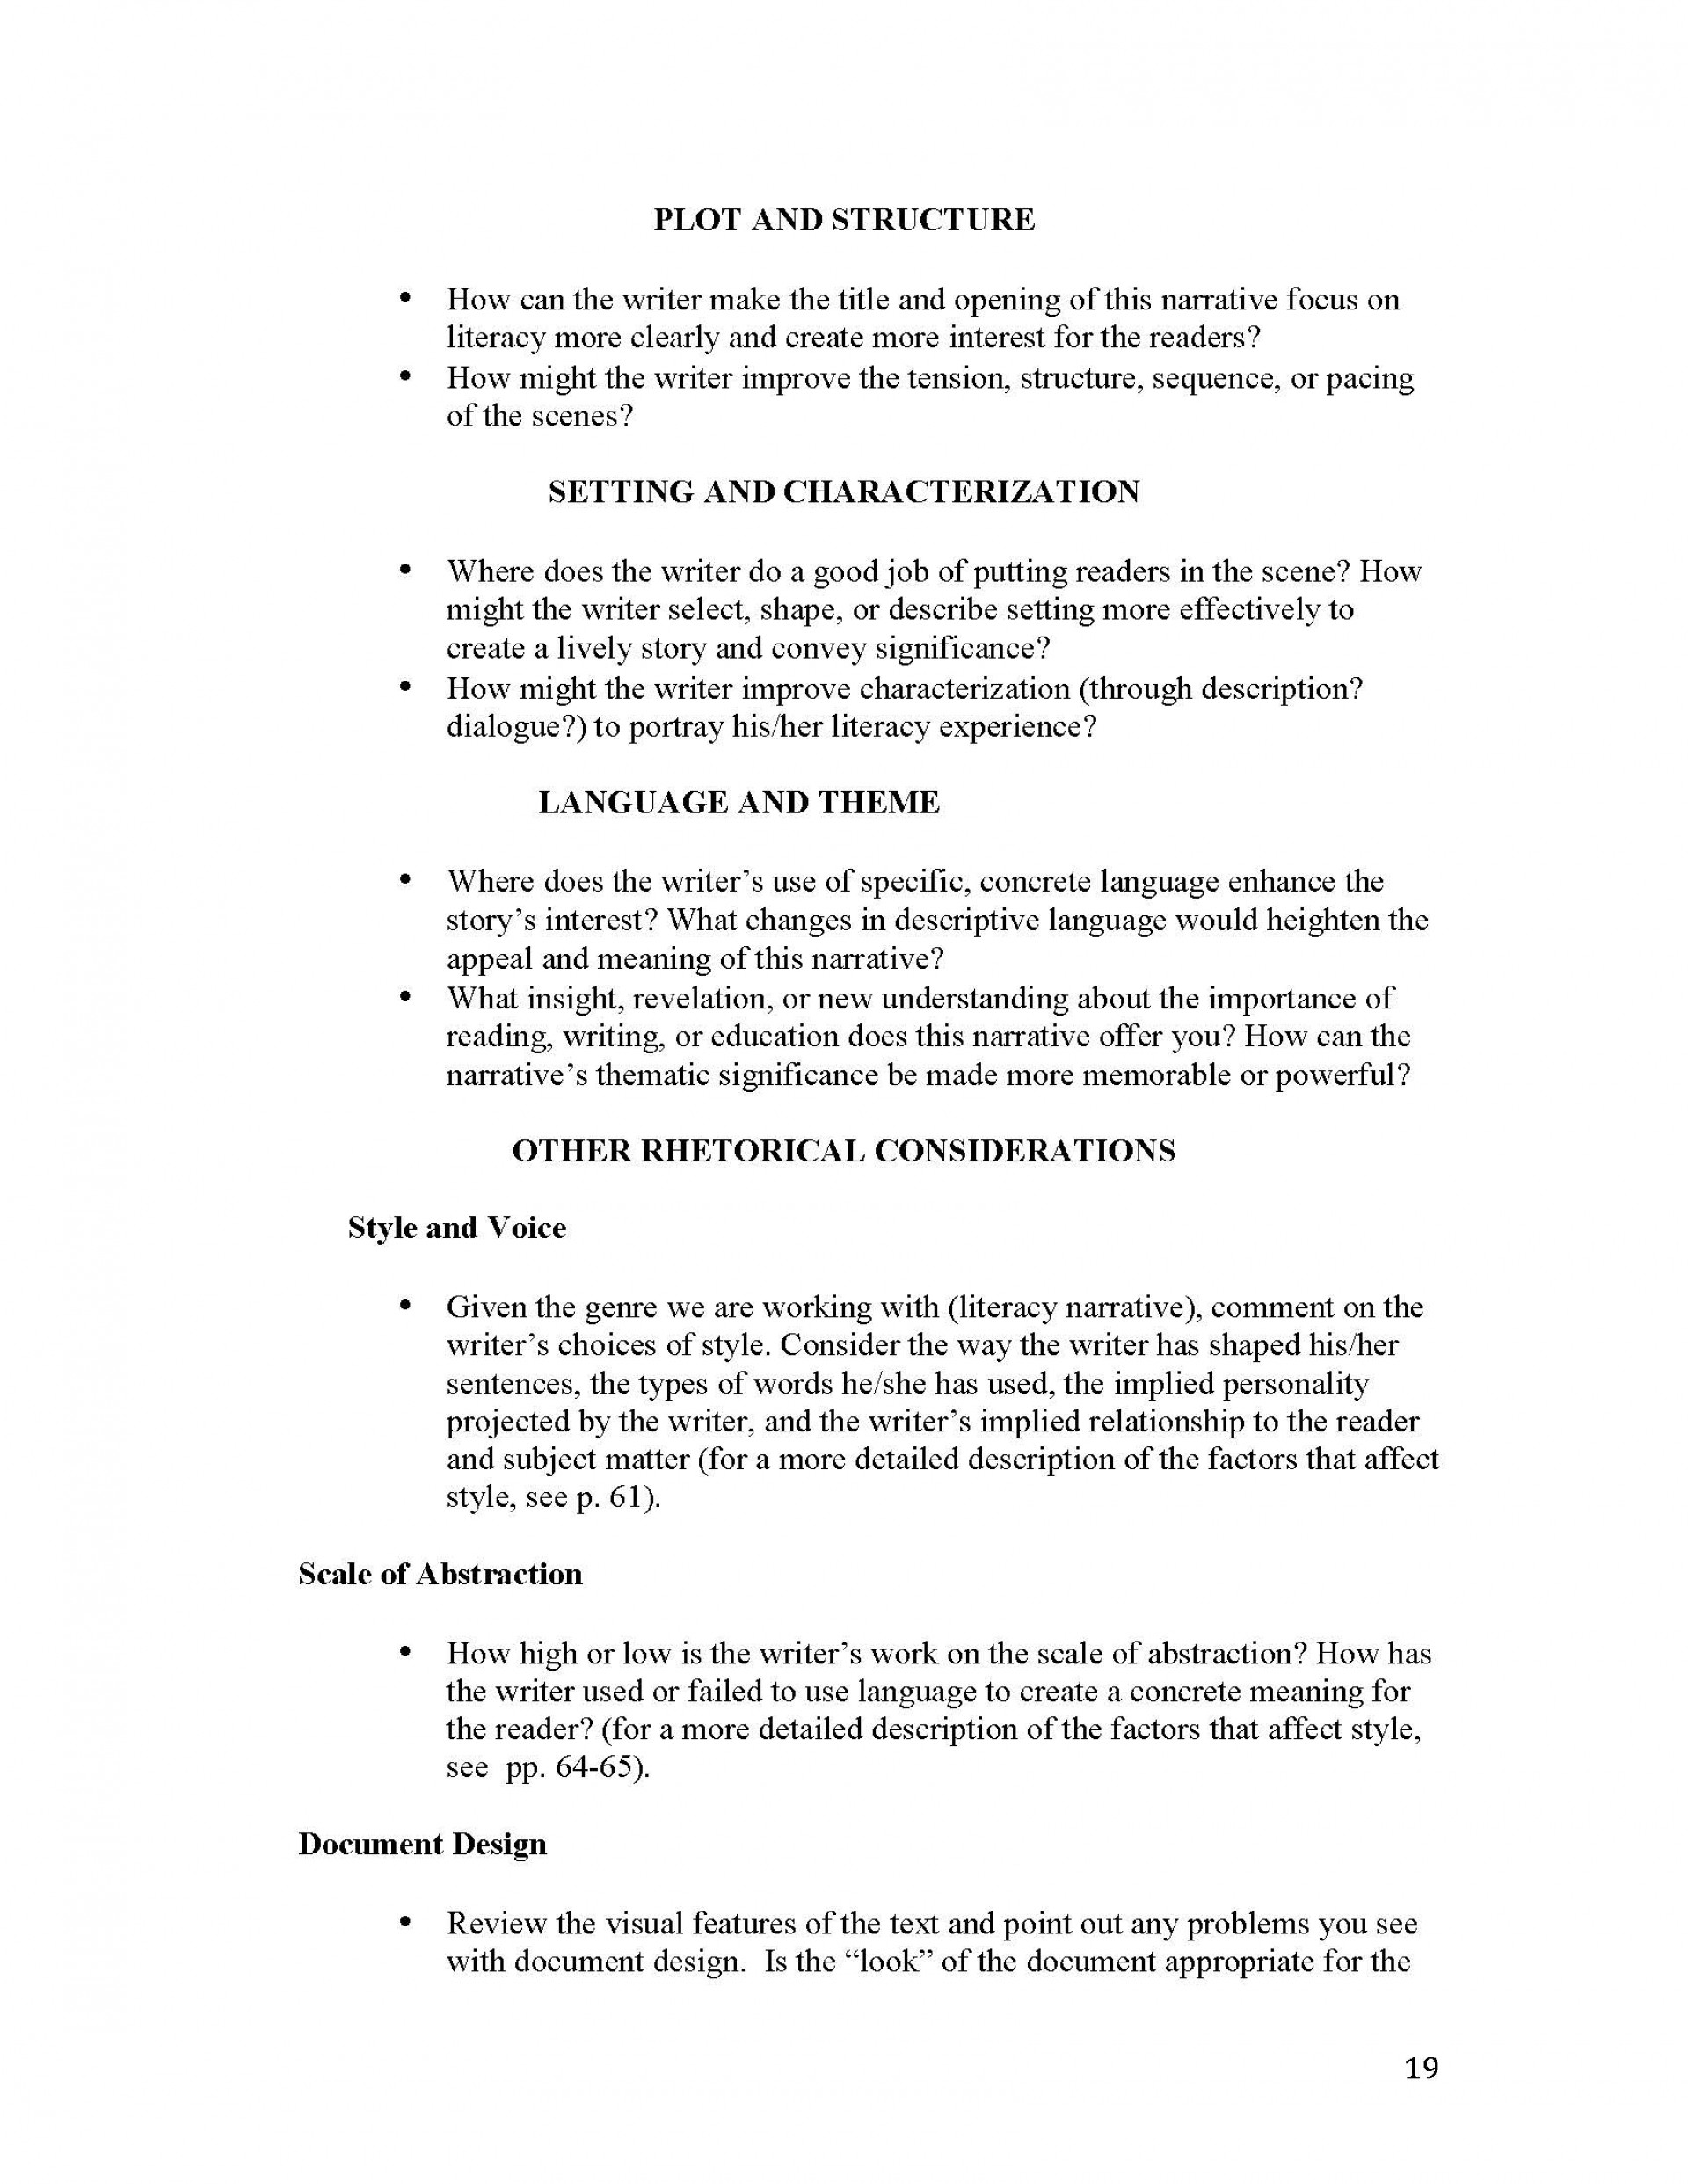 015 Narrative Essay Definition Example Unit 1 Literacy Instructor Copy Page 19 Stunning Literature Meaning 1920